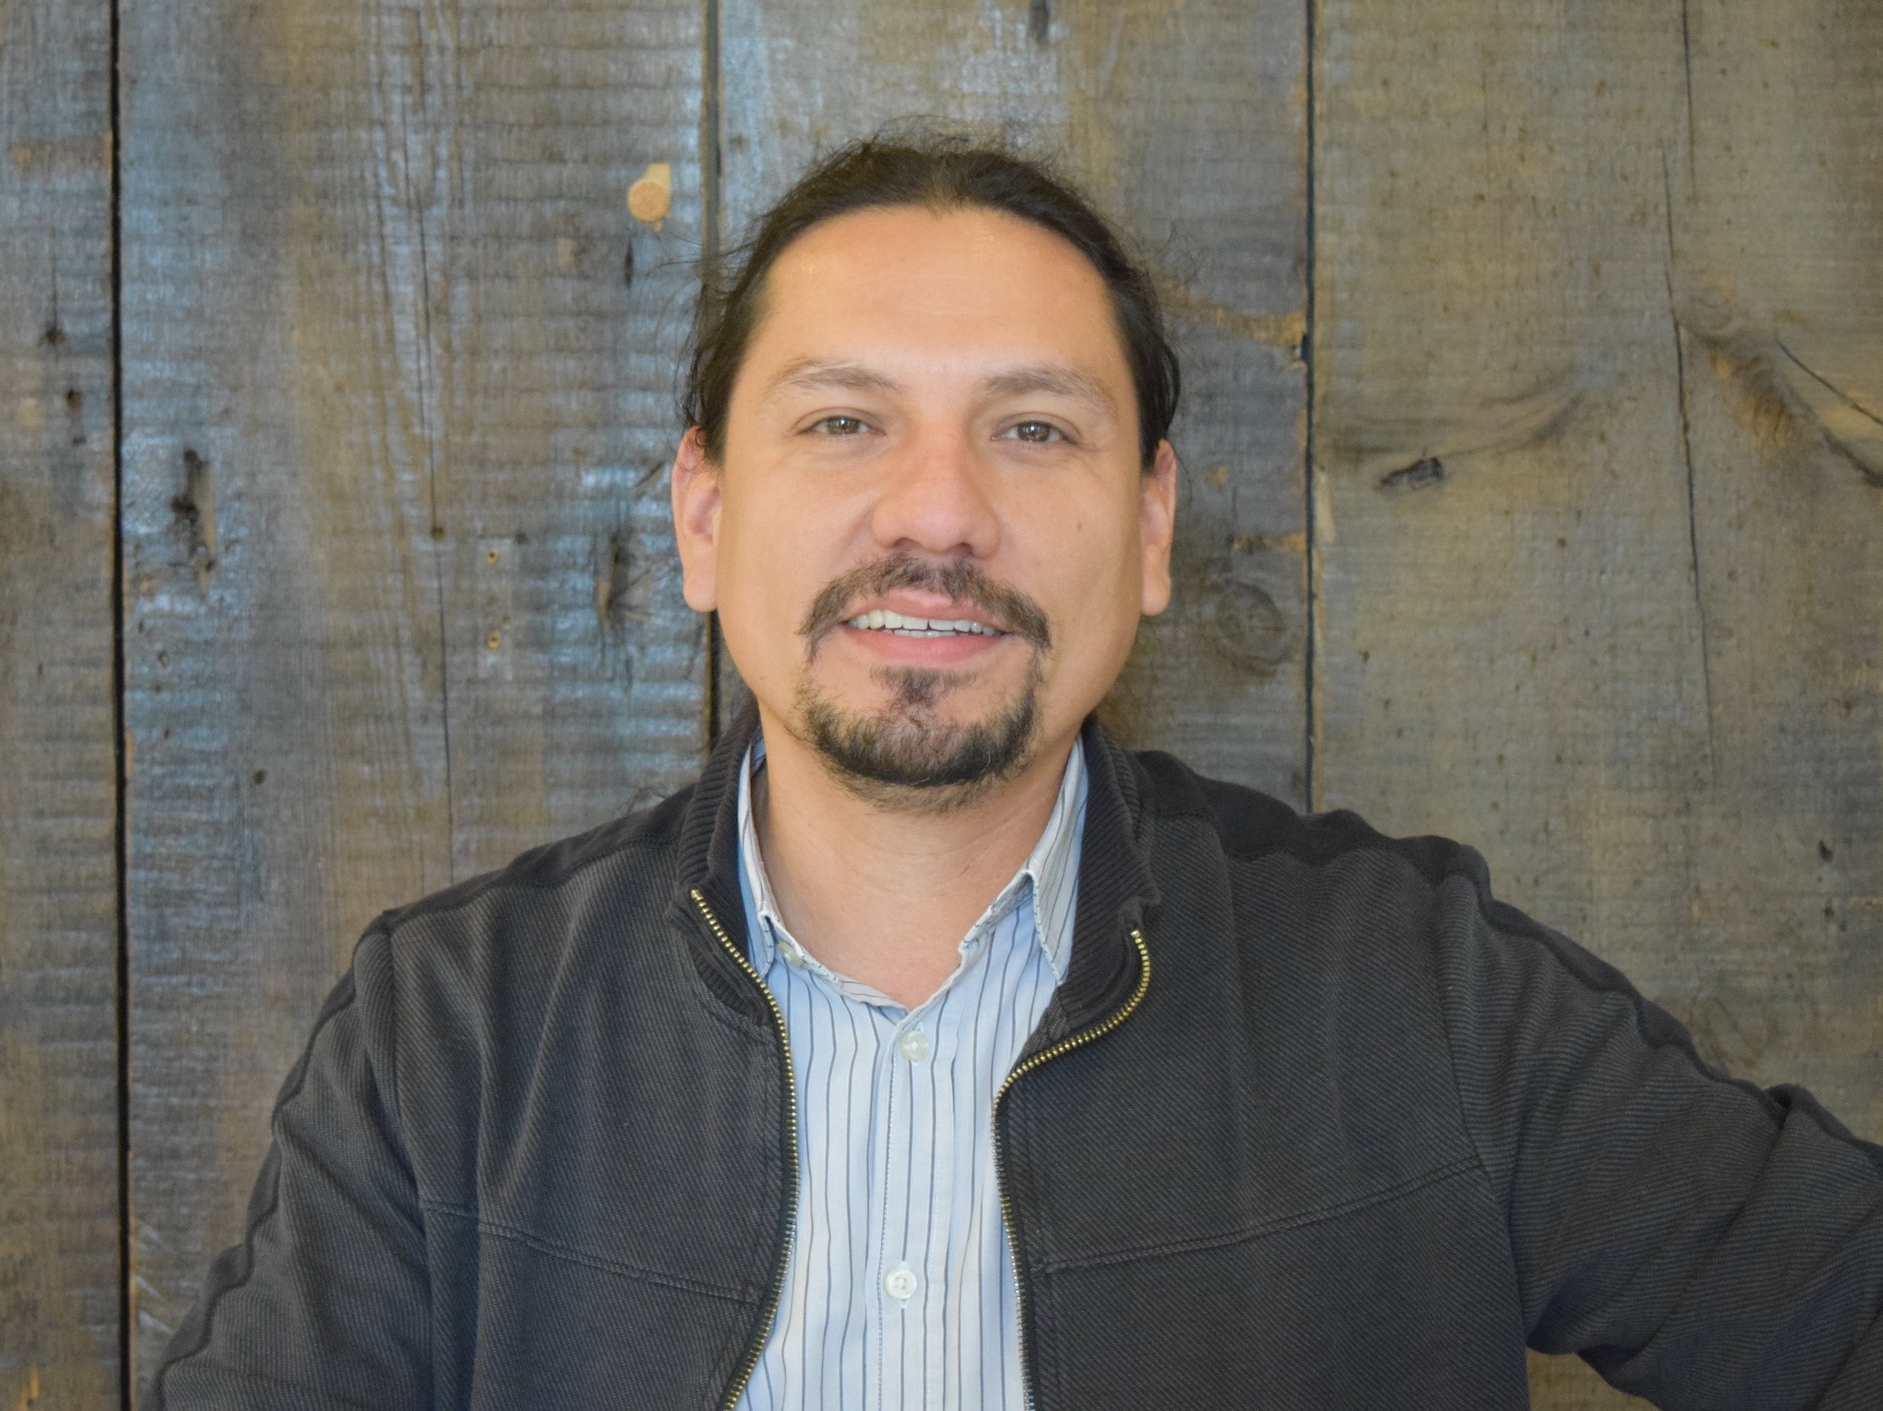 "J. Omar Magana   Executive Director and Founder, OPEN Center for the Arts   ""For the community, I think it's very beneficial as we are one of the only galleries in the community.  Basically, what we focus on is making sure that there are arts in the neighborhood - always exploring ways, always sharing what we know and working together to expand the creativity in the neighborhood.  We're connected with several of the organizations around here.  We're in a coalition called the Marshall Square Resource Network, made up of all the organizations from the neighborhood.  What they do is unite all the non-profit organizations from the neighborhood, so they can get together and everyone can share resources.  It becomes this powerful network.   So if you need some art, it's over here.  If you need some medical stuff, legal stuff - whatever it is that you need, everyone does something different, which is pretty awesome.  And by doing that there is an awesome energy in the neighborhood.  To know that we're part of that, it's amazing…Right now we have a theater program that we manage, Teatro Americano, which was created by Latinos Progresando.  They explore ways to make plays related to current events and current situations in our neighborhood.  We also have some dance classes called 'I'm a Dance'.  We are pretty much just trying to get a little bit of energy, a little bit of fun, and just loosen up a little bit and learn something different.  We have art classes that we do for free with the support of the Lincoln Park Zoo.  We're exploring ways to explain the environment, the wildlife, and the ecosystem through art.  We also have a leadership program.  It's called 'Hola'.  What they do is try to explain to people the power within them and figuring out a way to encourage them…Ever since I was a child, this was the place we would always come to to get the things we need as Mexicans. It's the second largest Mexican community in the United States.  It is amazing. To walk down 26th St. you see it's all mom and pop shops.  Every time you go in, you're going to connect with someone, and it's going to feel like a small town."""